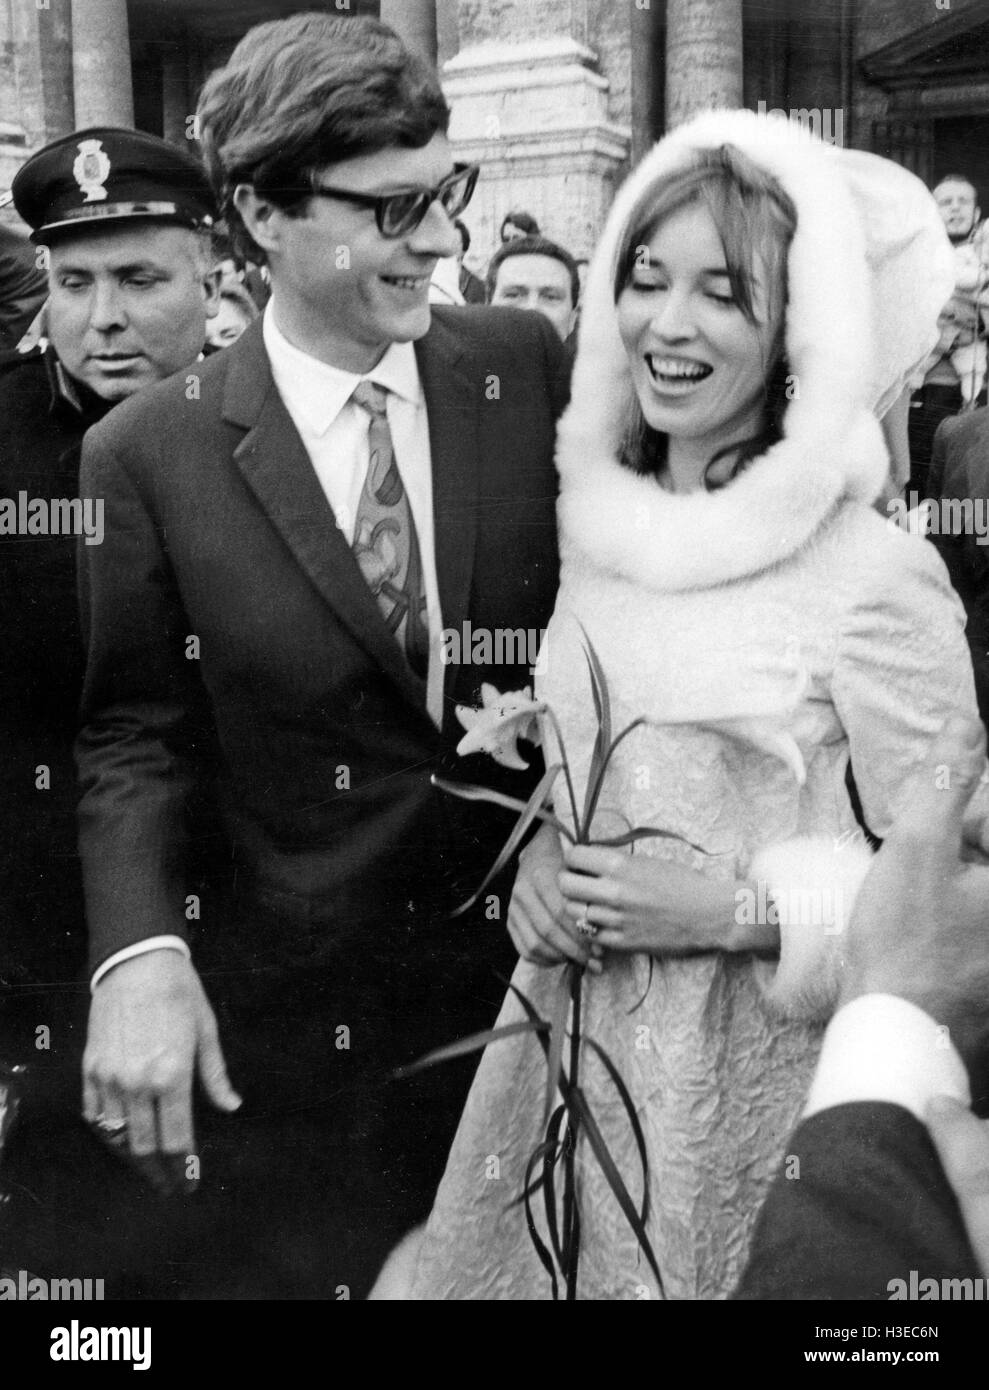 TALITHA POL marries John Paul Getty Jr at the Capital Hall in Rome on 10 December 1966 - Stock Image